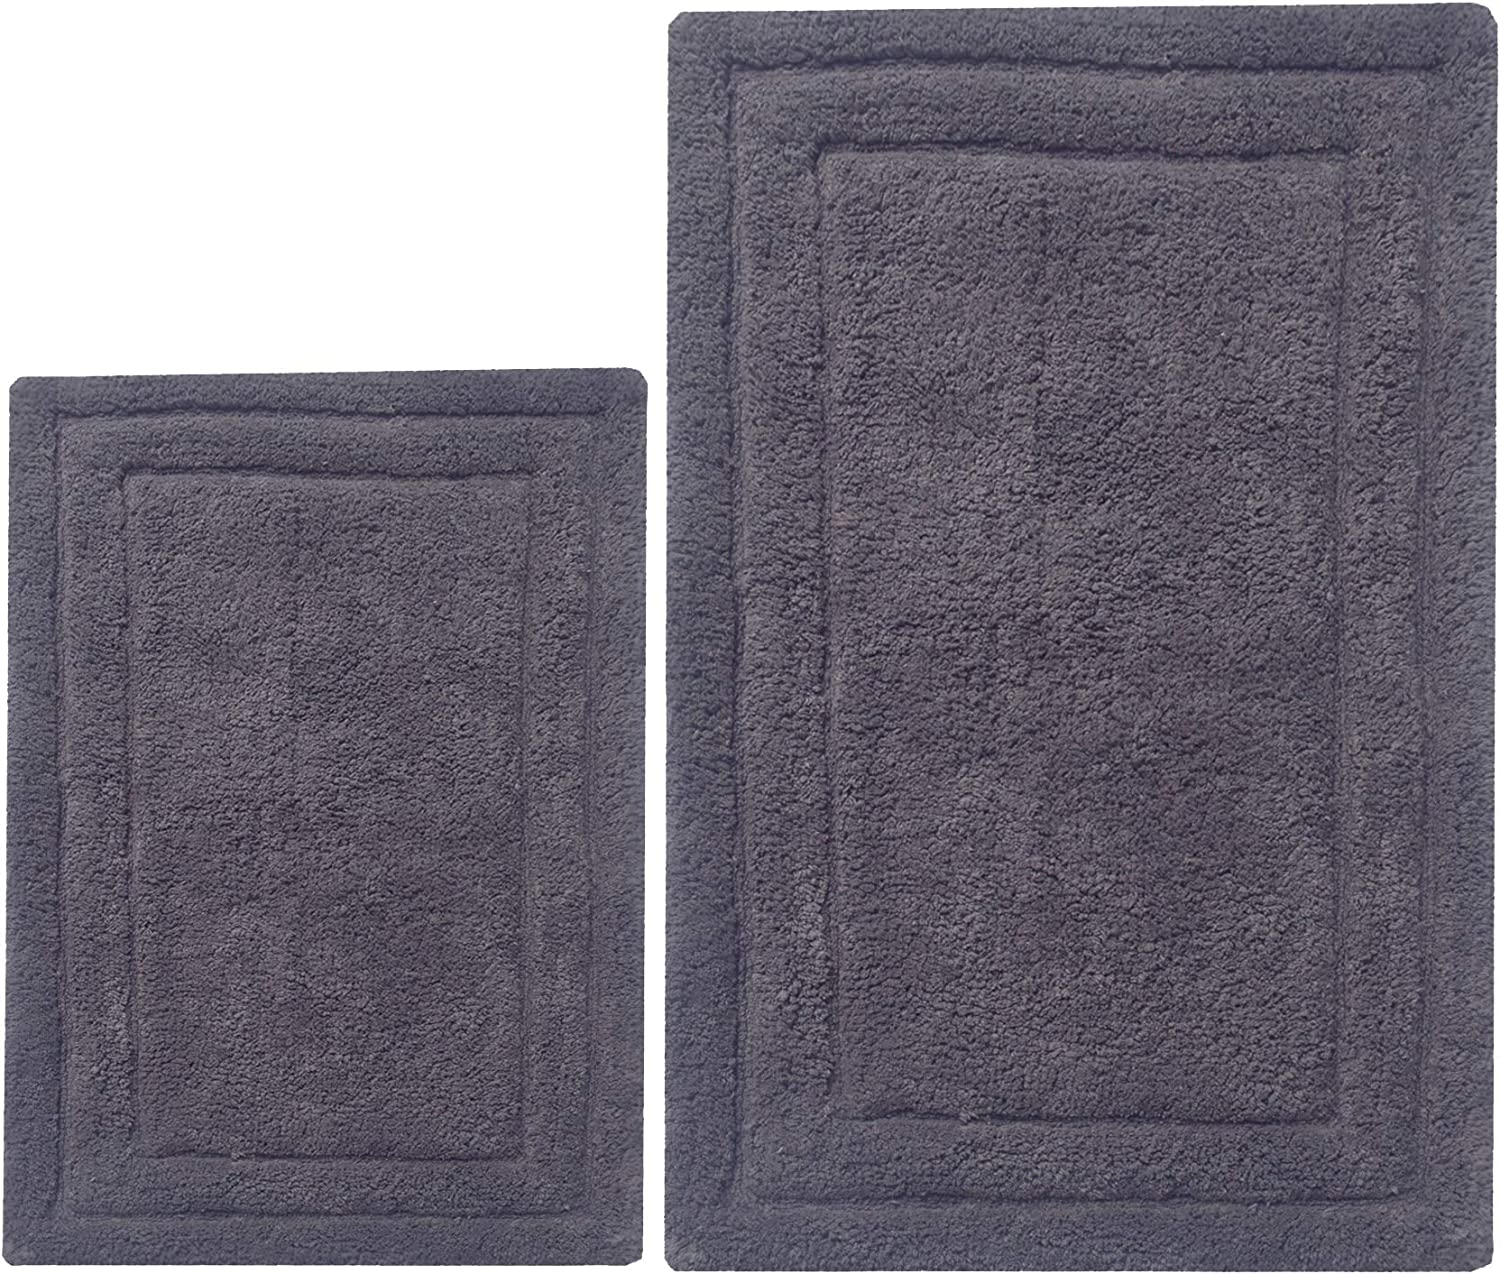 Chardin Home - 100% Cotton two Piece Classicc Bath Rug Set, (21''x34'' & 17''x24'') with anti-skid spray latex back, Platinum Gray